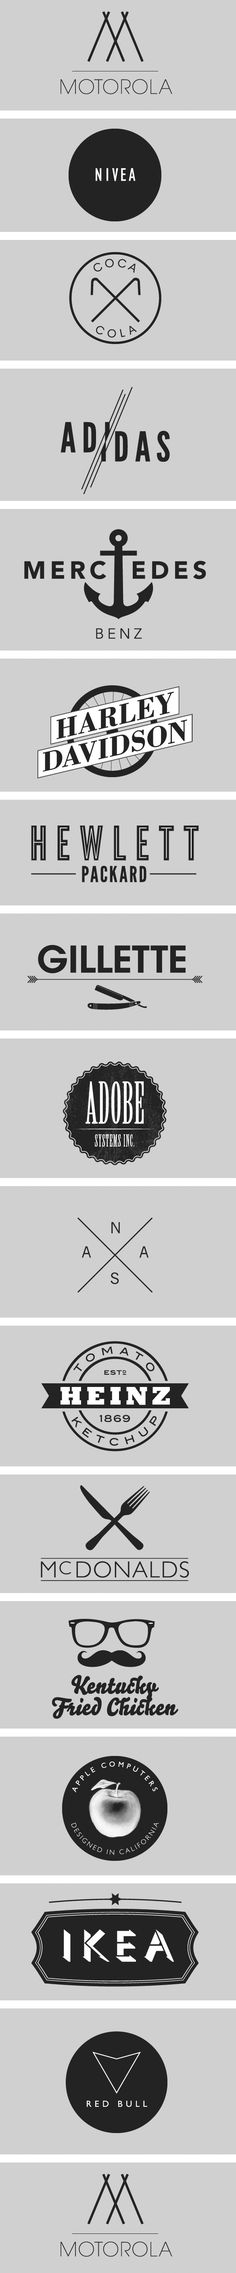 Hipster Logos Style :D #graphism.fr    http://graphism.fr/dcryptez-le-logos-la-mode-hipster